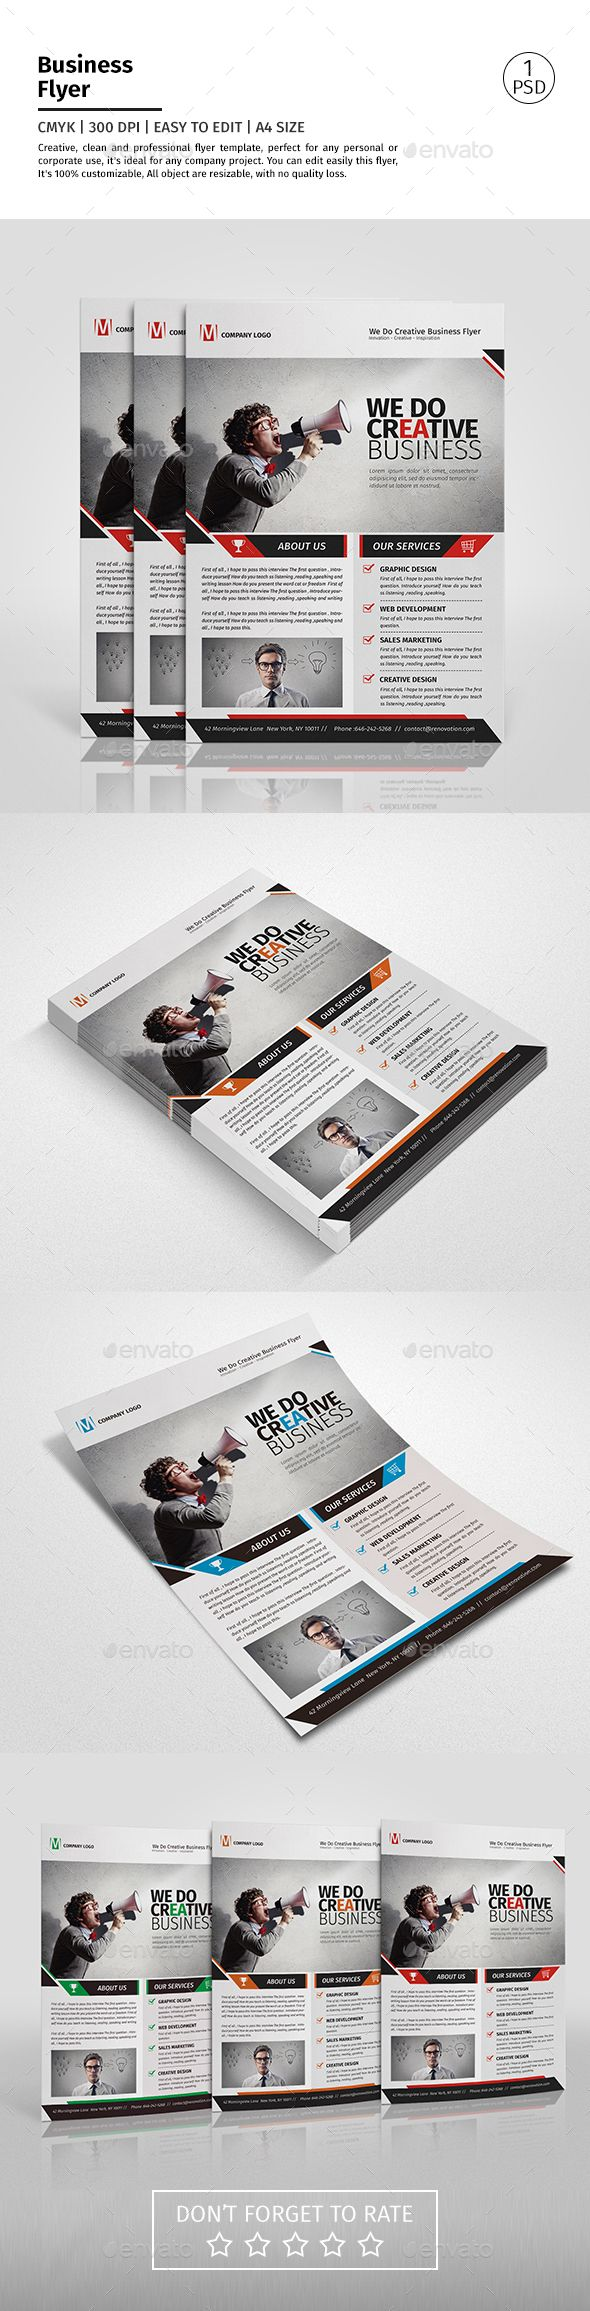 A4 Corporate Business Flyer Template PSD #design Download: http://graphicriver.net/item/a4-corporate-business-flyer-template-vol-09/13346202?ref=ksioks